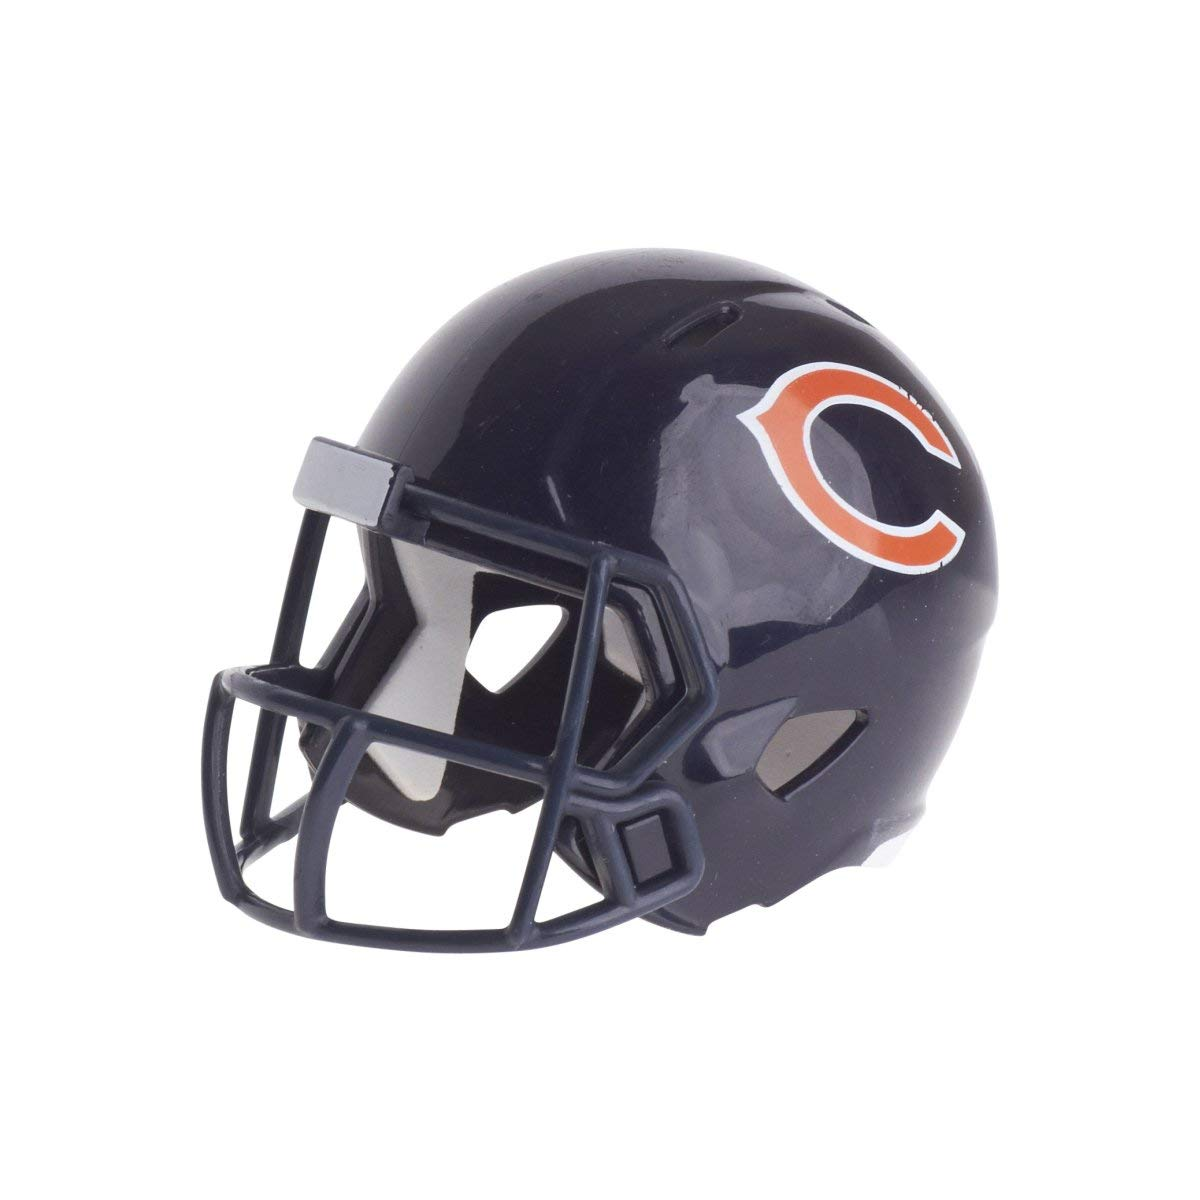 Riddell Chicago Bears Mini-Speed Pocket Pro Micro/Kamerahandys/Football Helm 095855320526